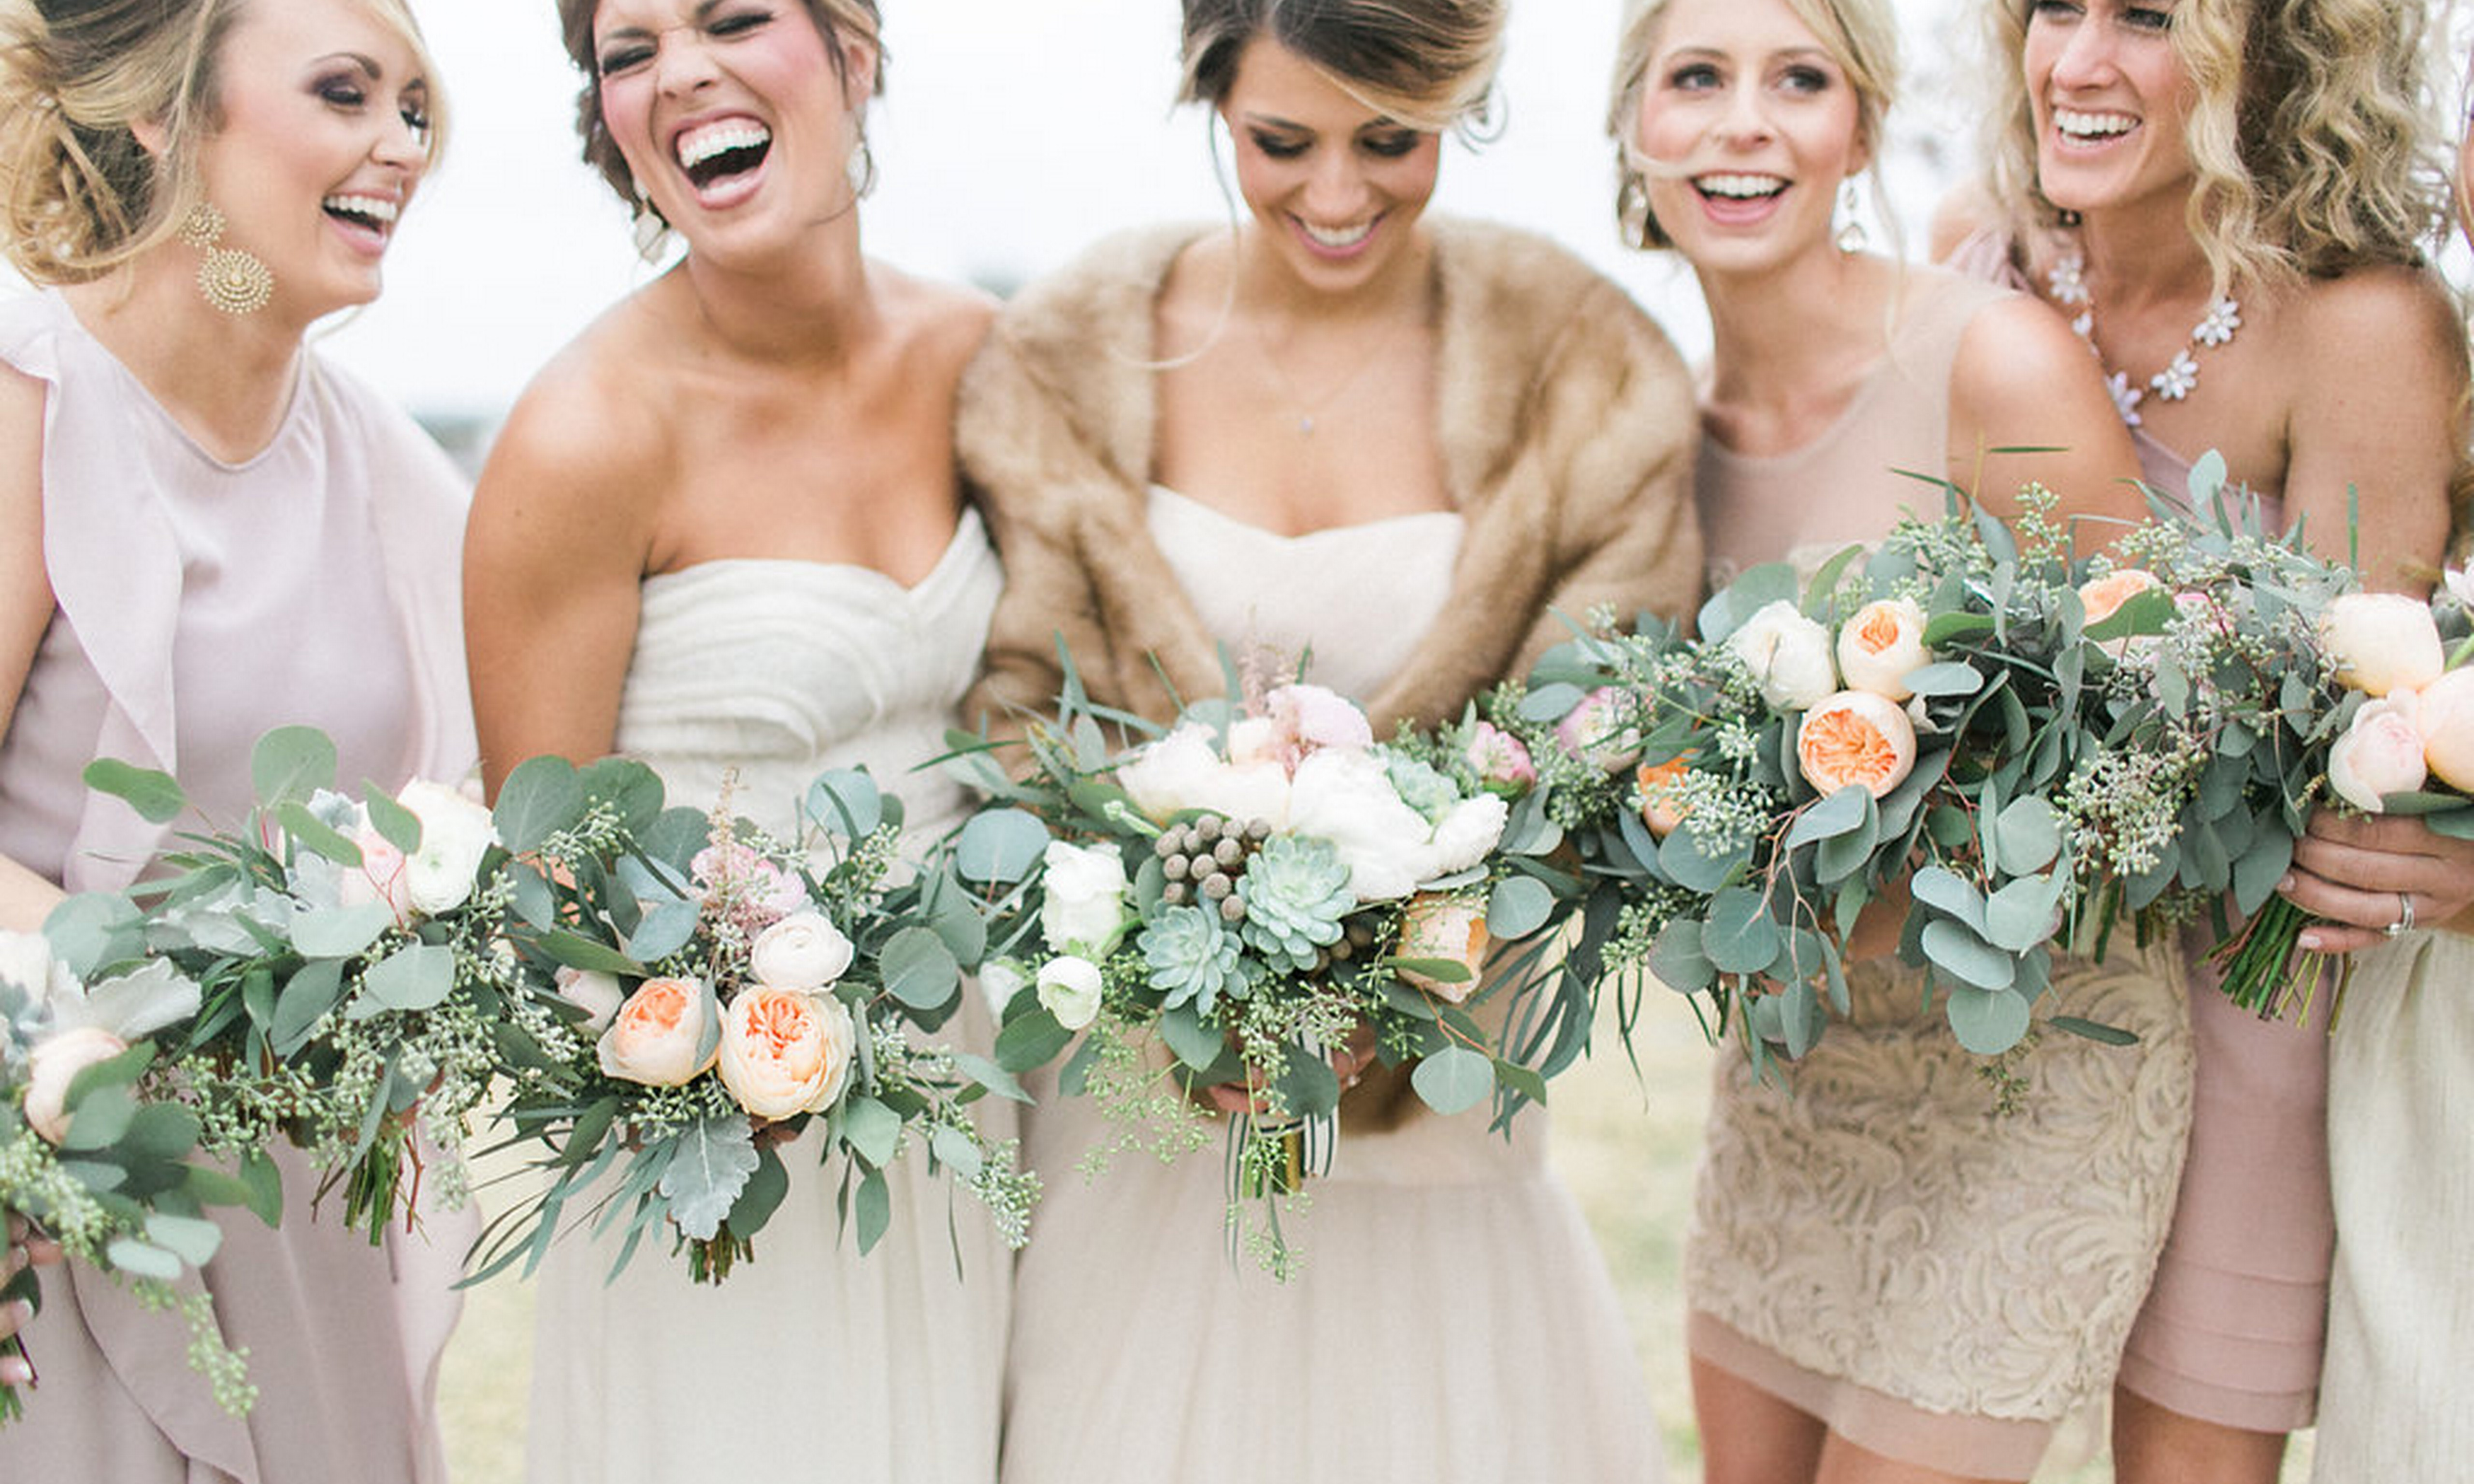 Celebrity wedding planner archives grit gold event design dallas wedding planner bridesmaid style anthropologie bridesmaids vera ombrellifo Image collections